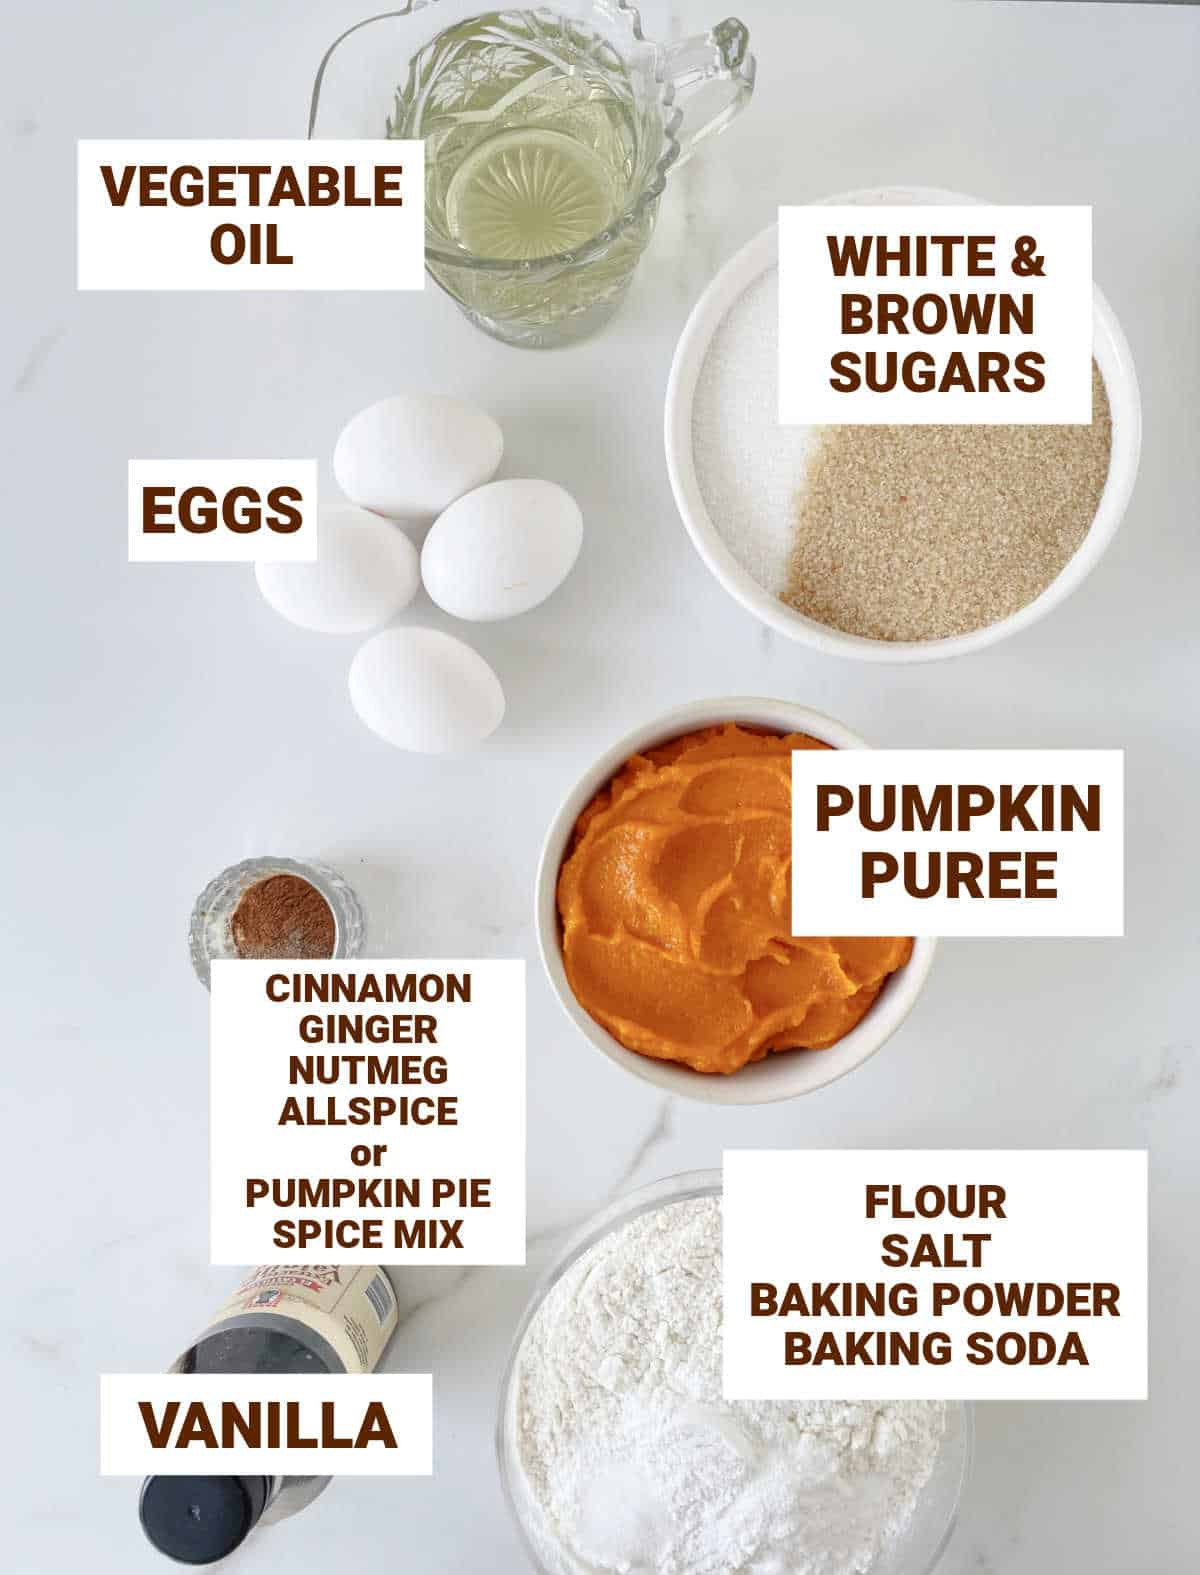 Bowls on white surface with ingredients for pumpkin cake including vanilla, dry ingredients, oil, sugars, eggs